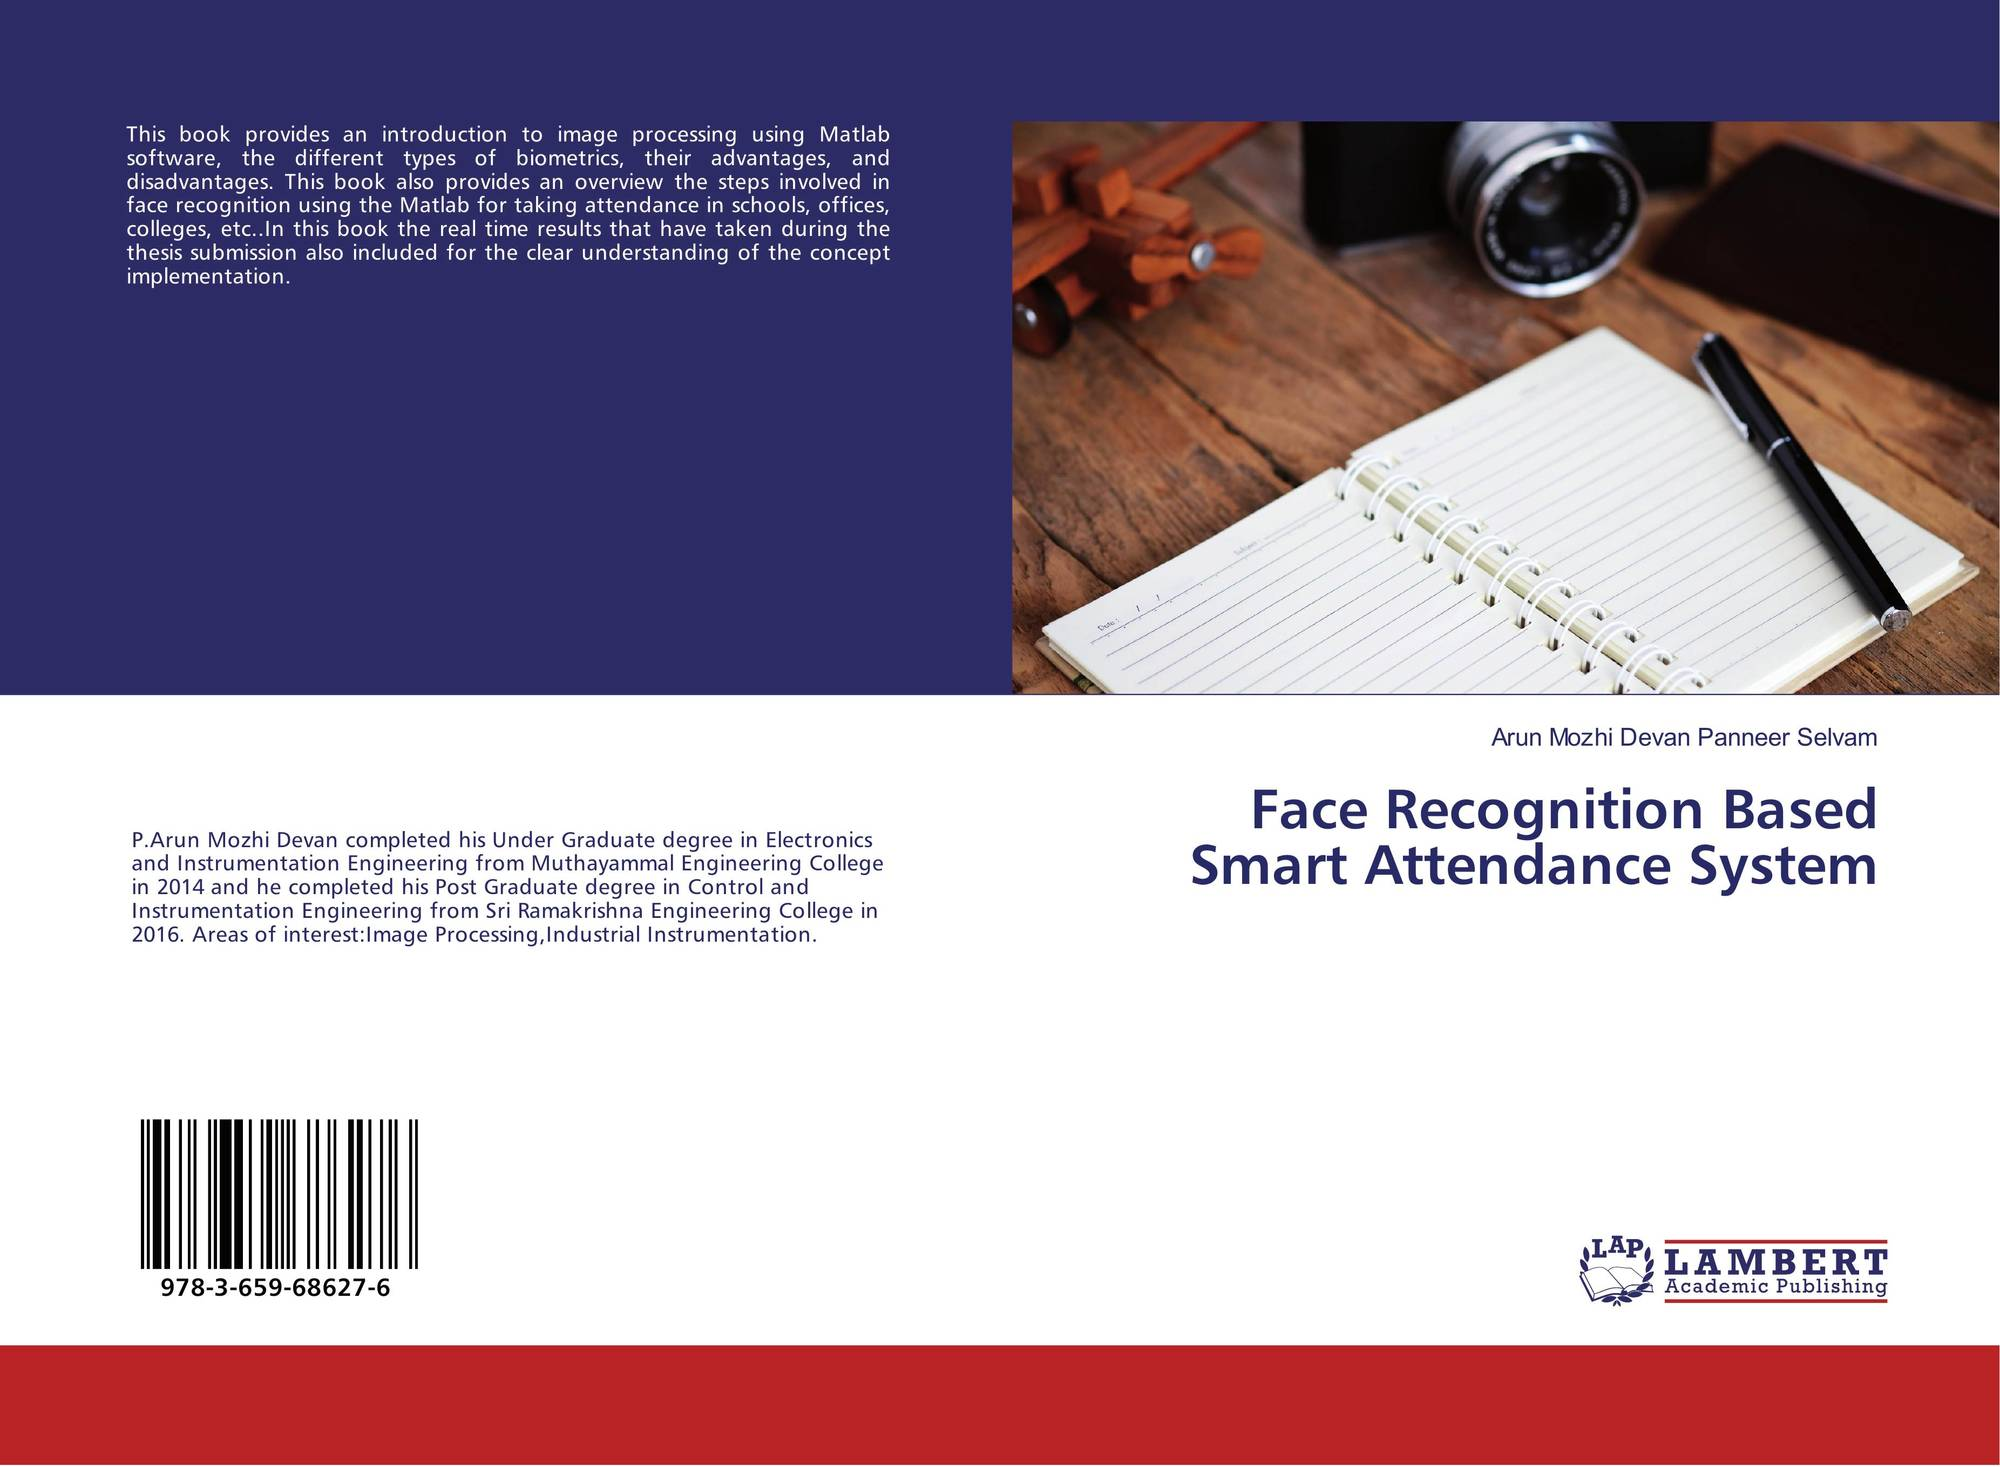 Face Recognition Based Smart Attendance System, 978-3-659